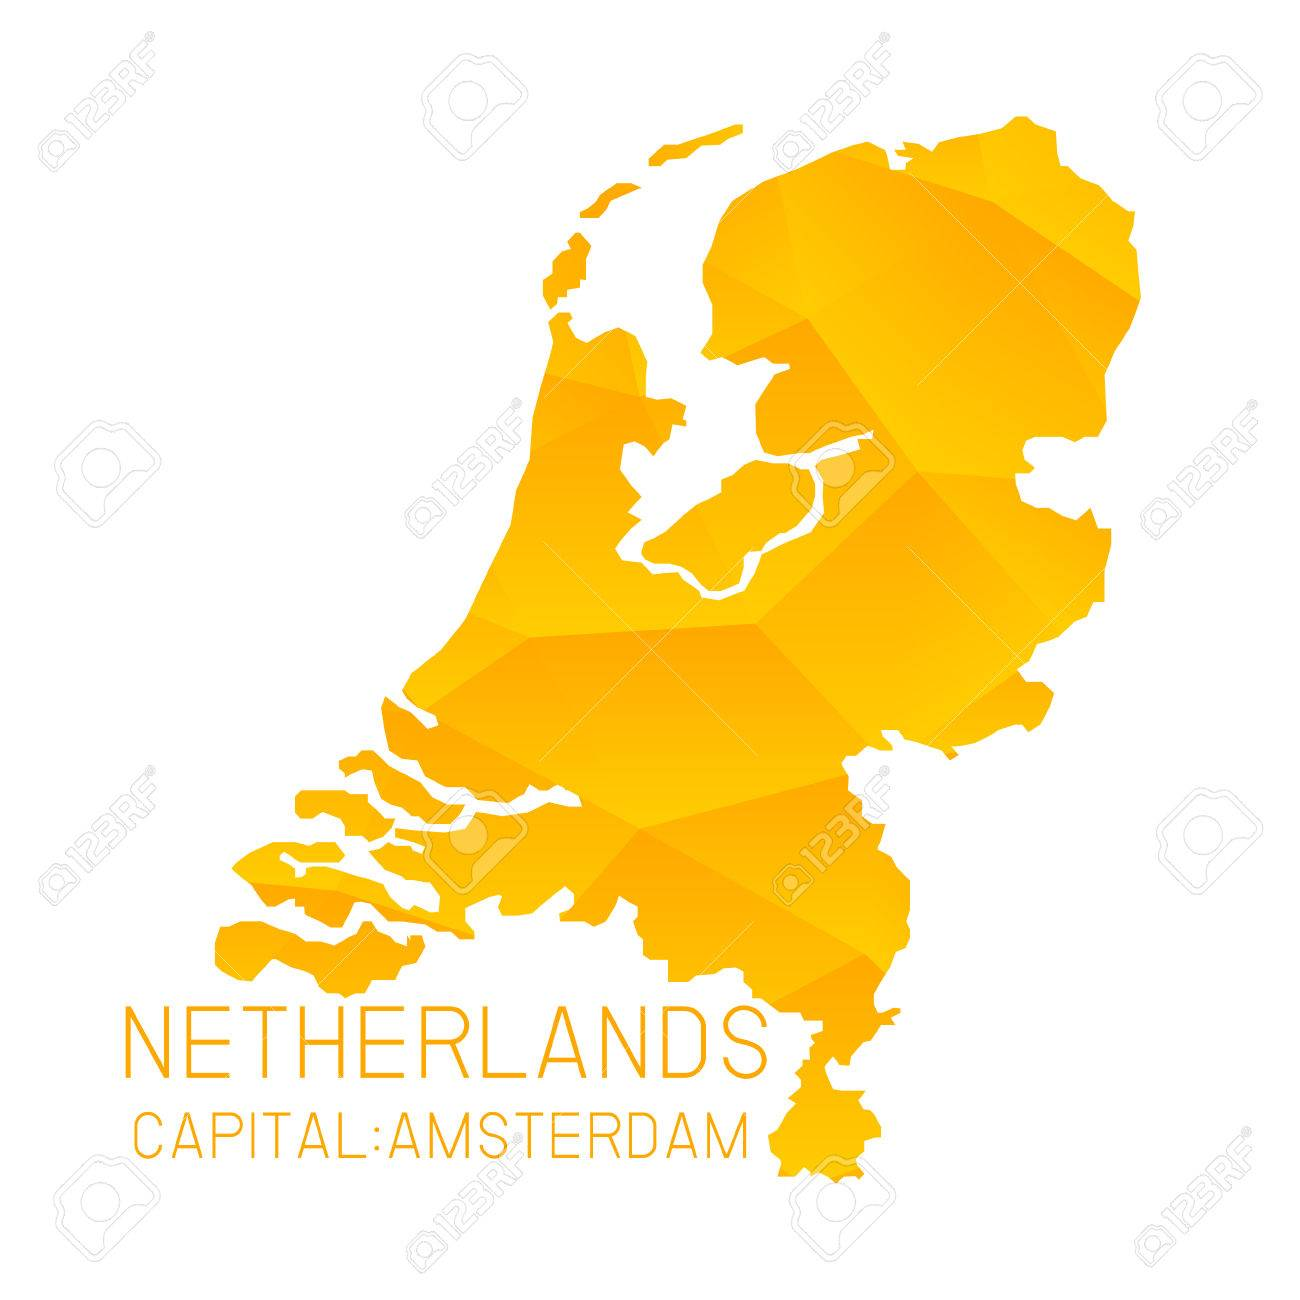 Netherlands Map Geometric Background Royalty Free Cliparts